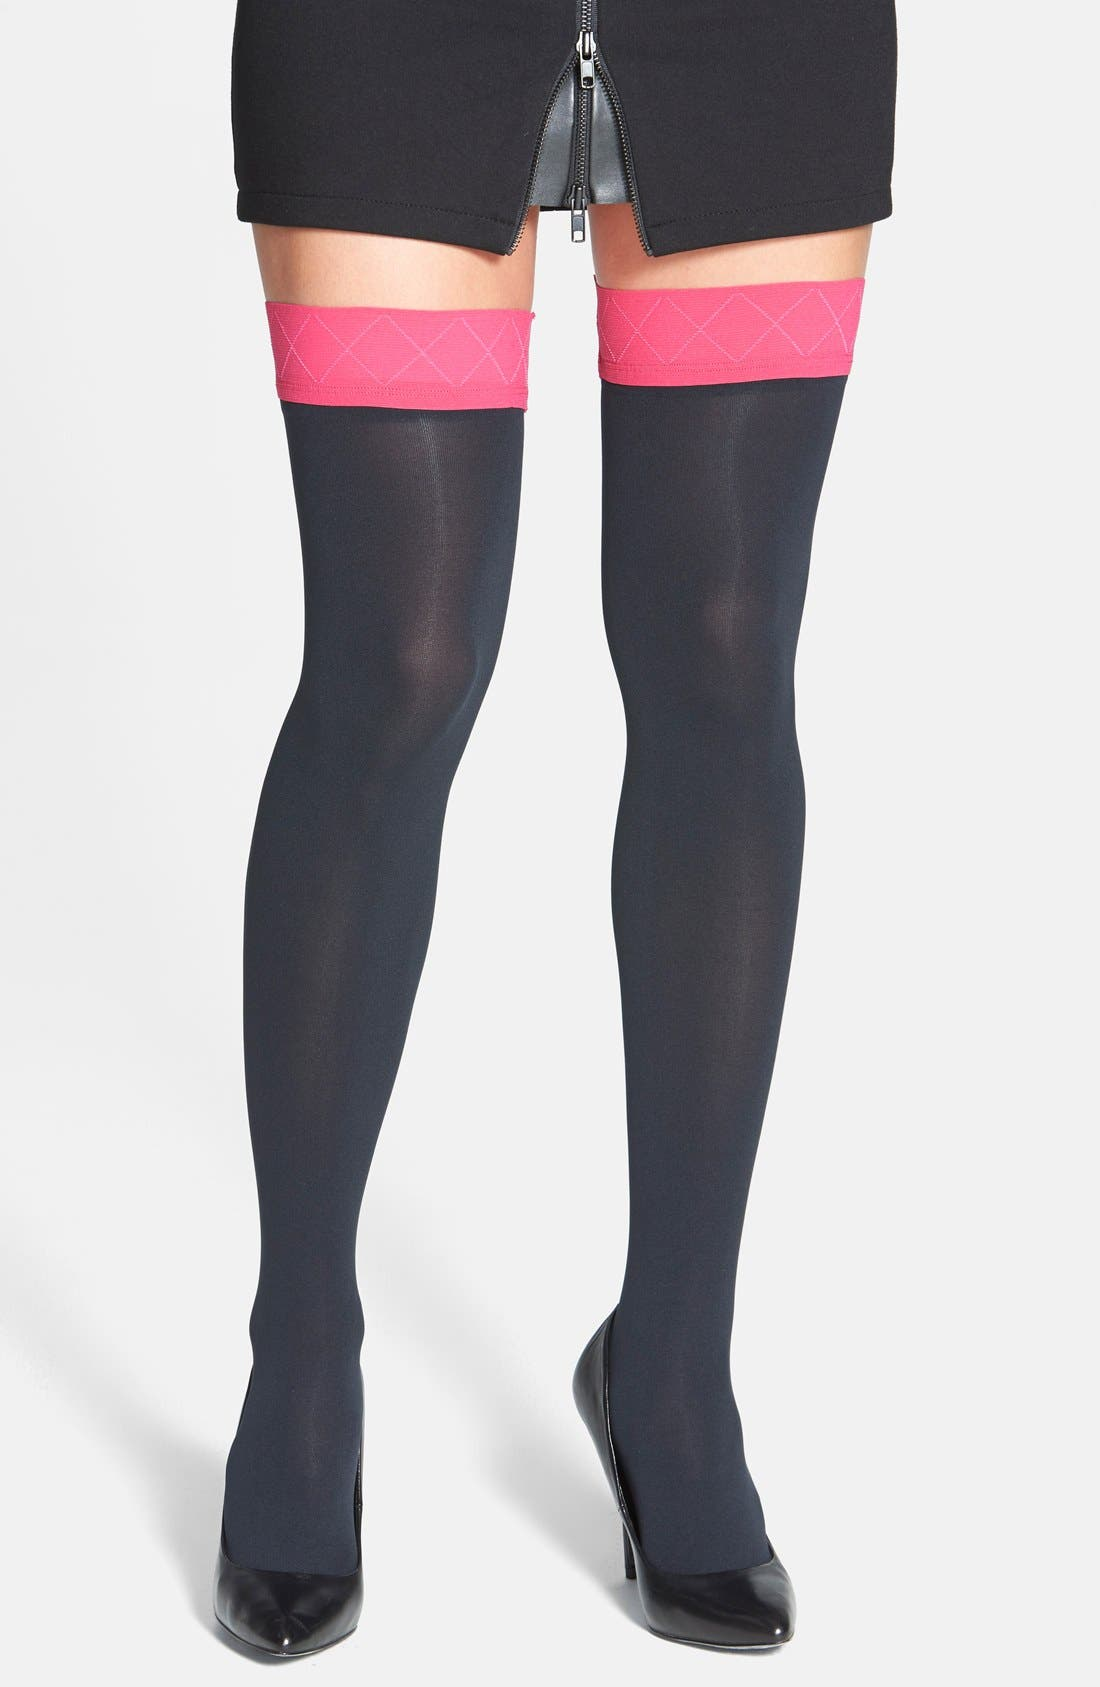 Main Image - Pretty Polly Opaque Top Over The Knee Socks